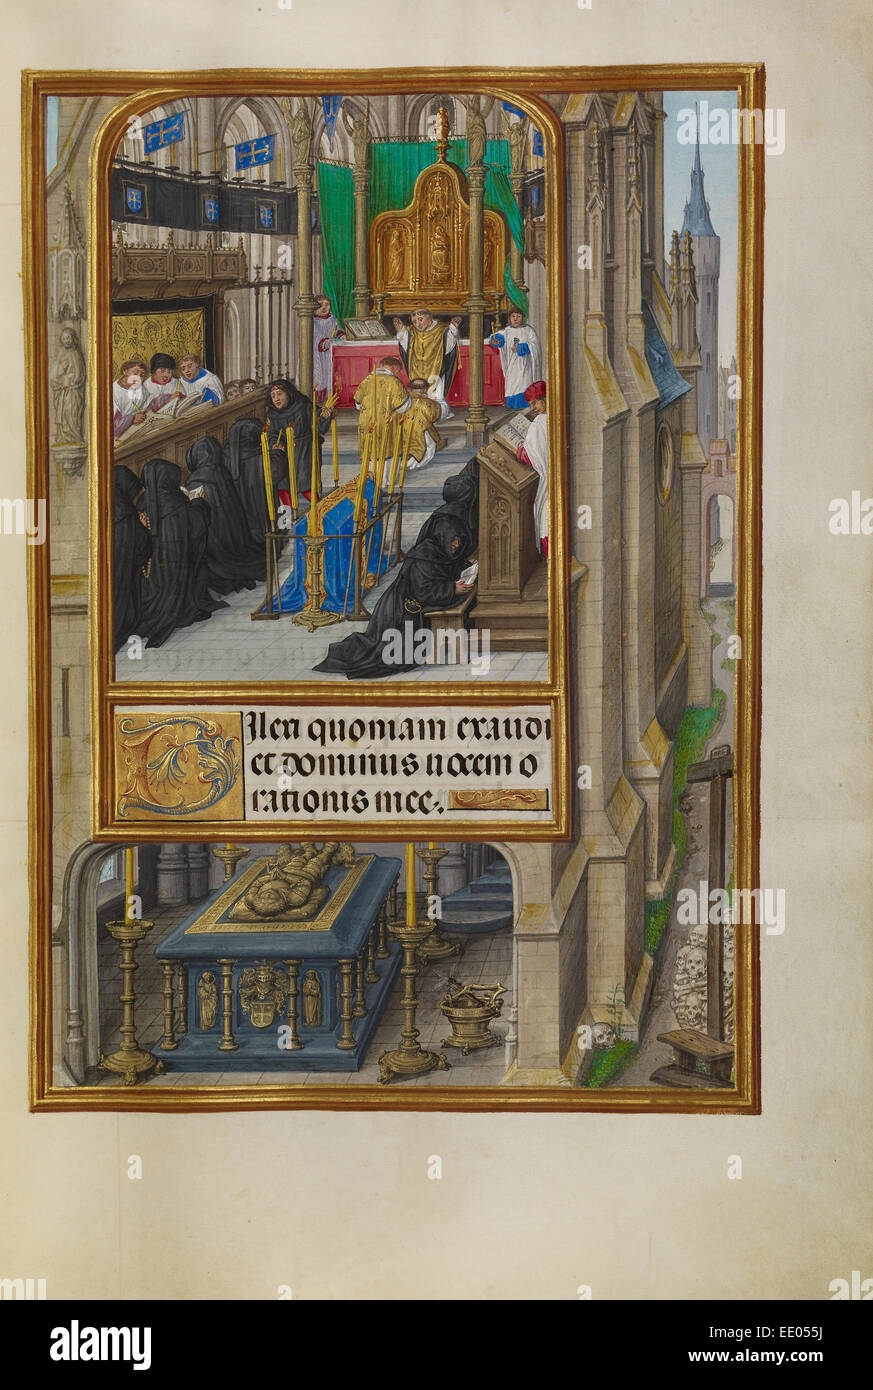 Office of the Dead; Master of James IV of Scotland, Flemish, before 1465 - about 1541; Bruges, Belgium, Europe - Stock Image